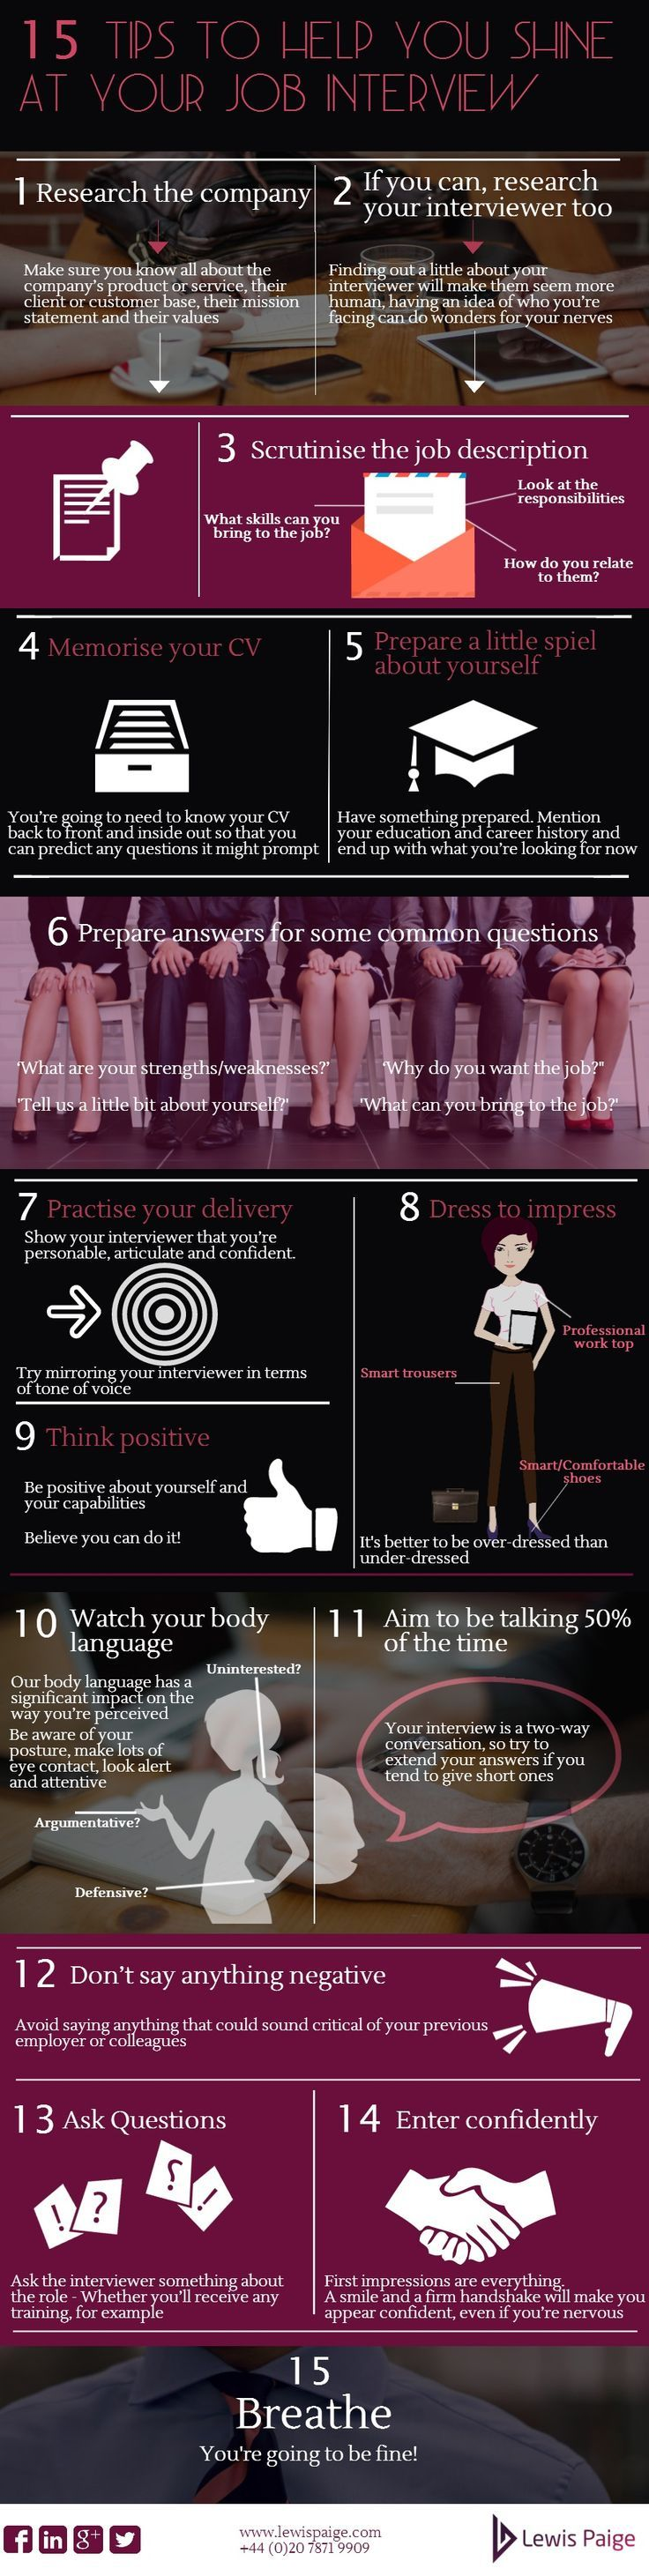 Tips to help you shine at your next job interview!